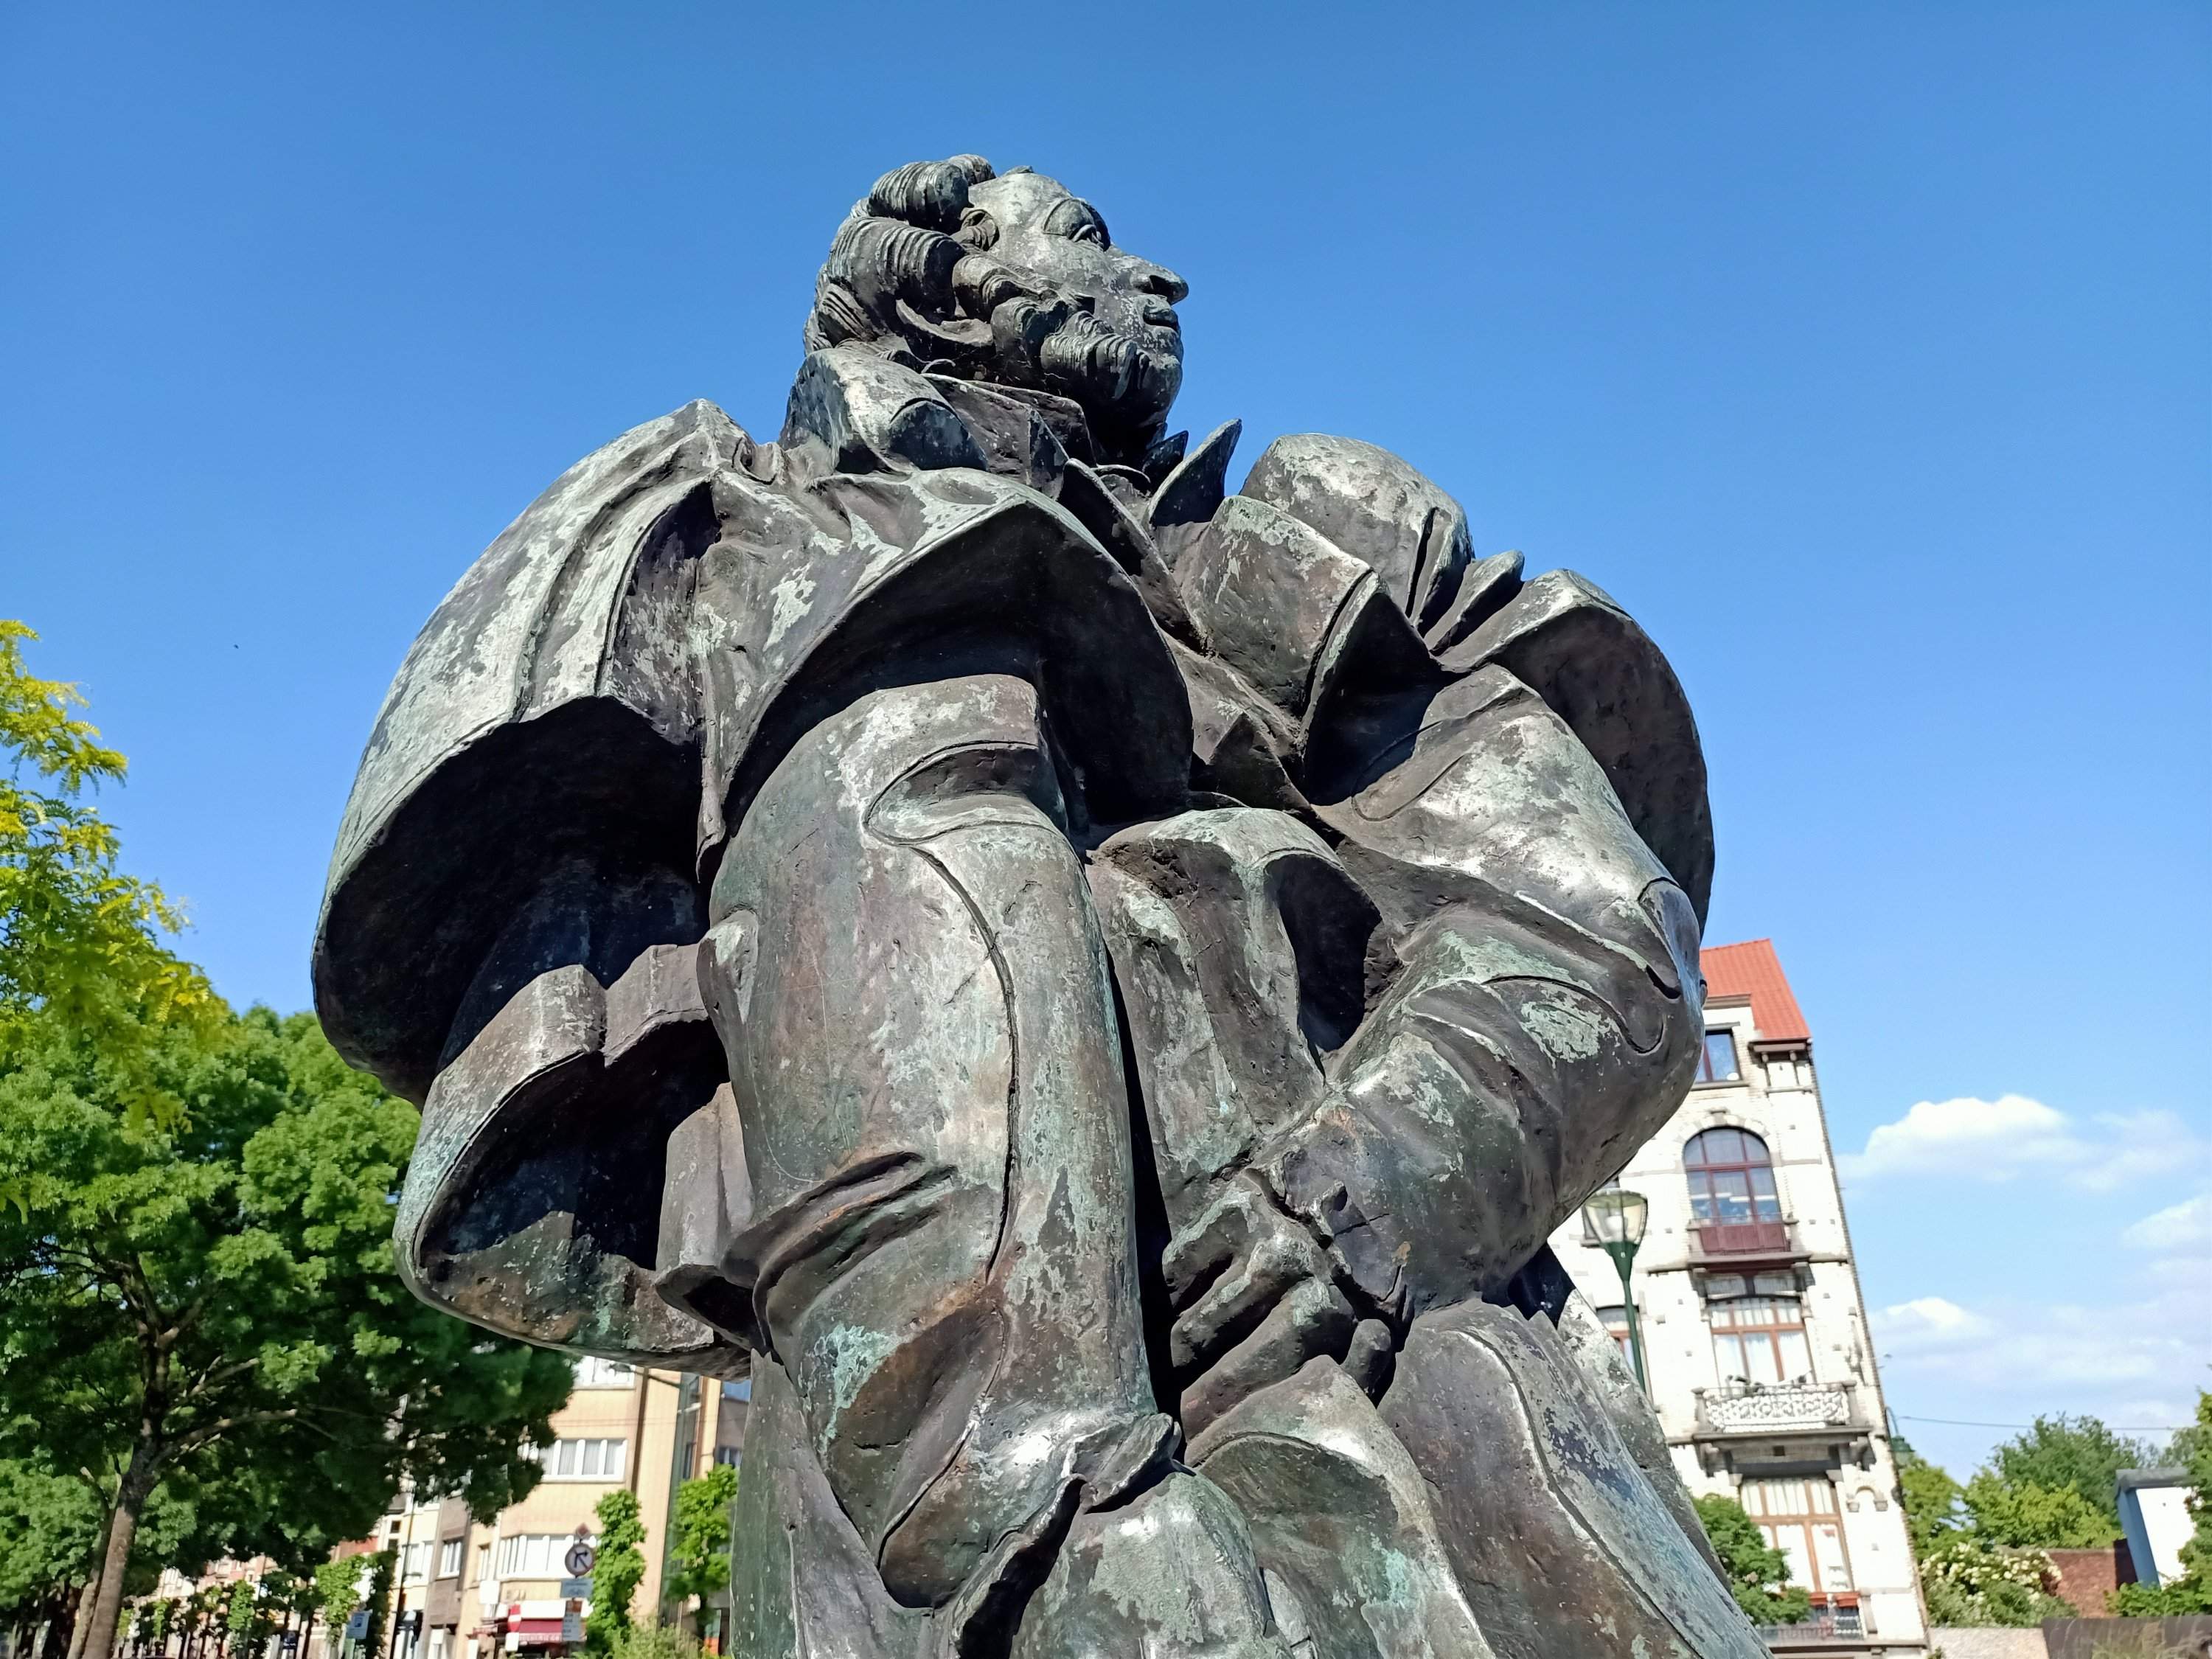 Brussels: no wreath to Pushkin